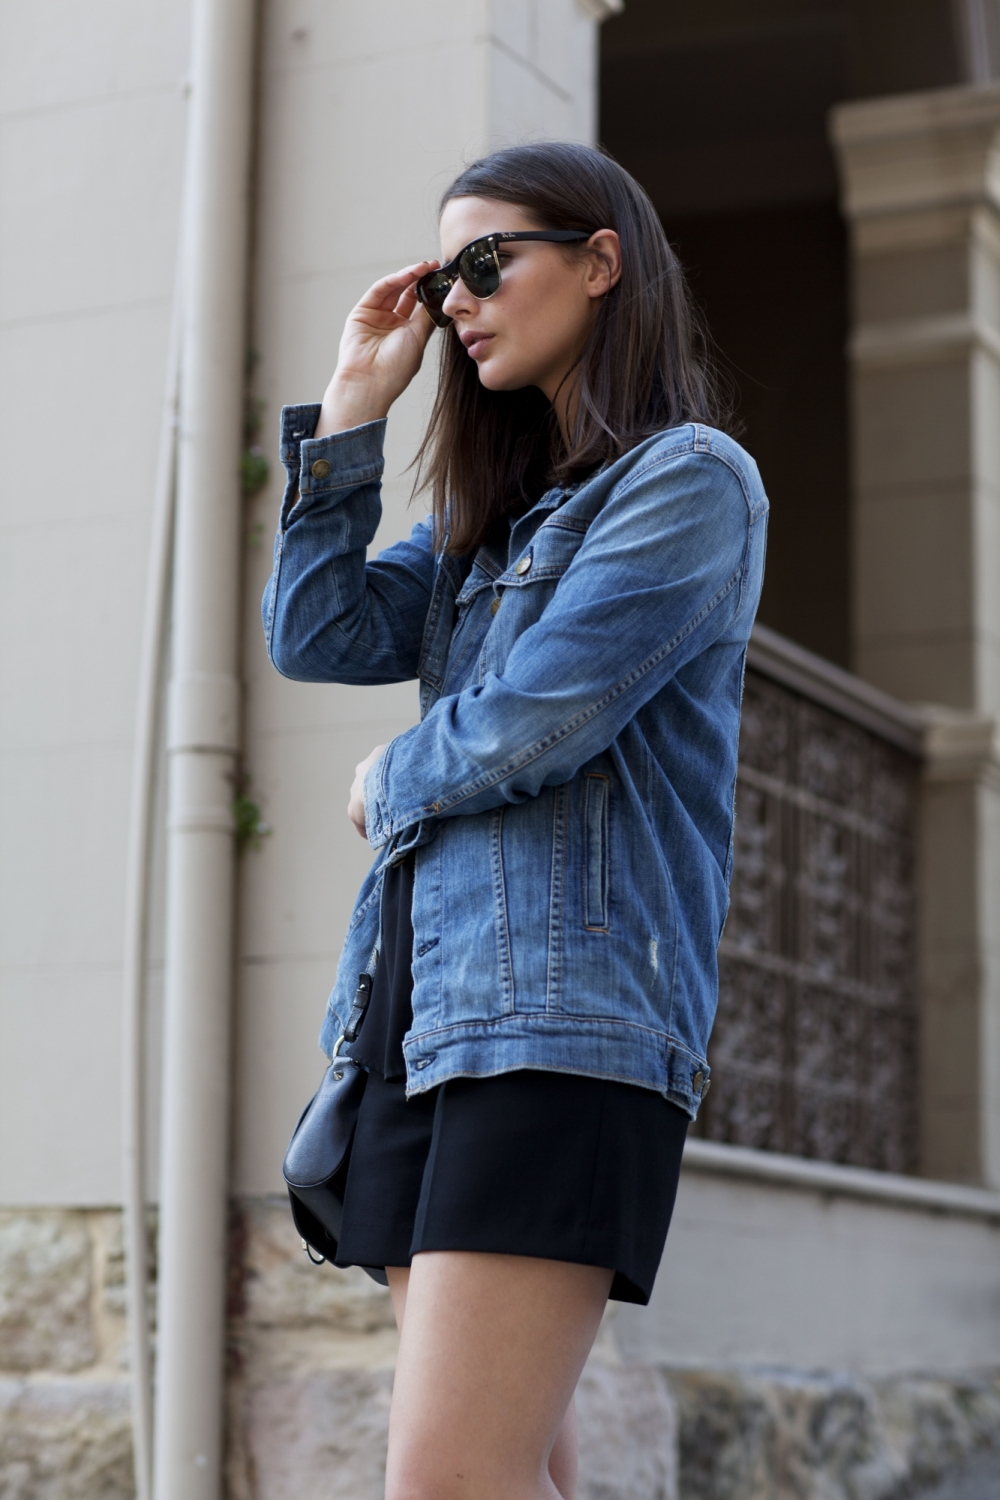 harper and harley_sara donaldson_denim jacket_black shorts_fashion blogger_7